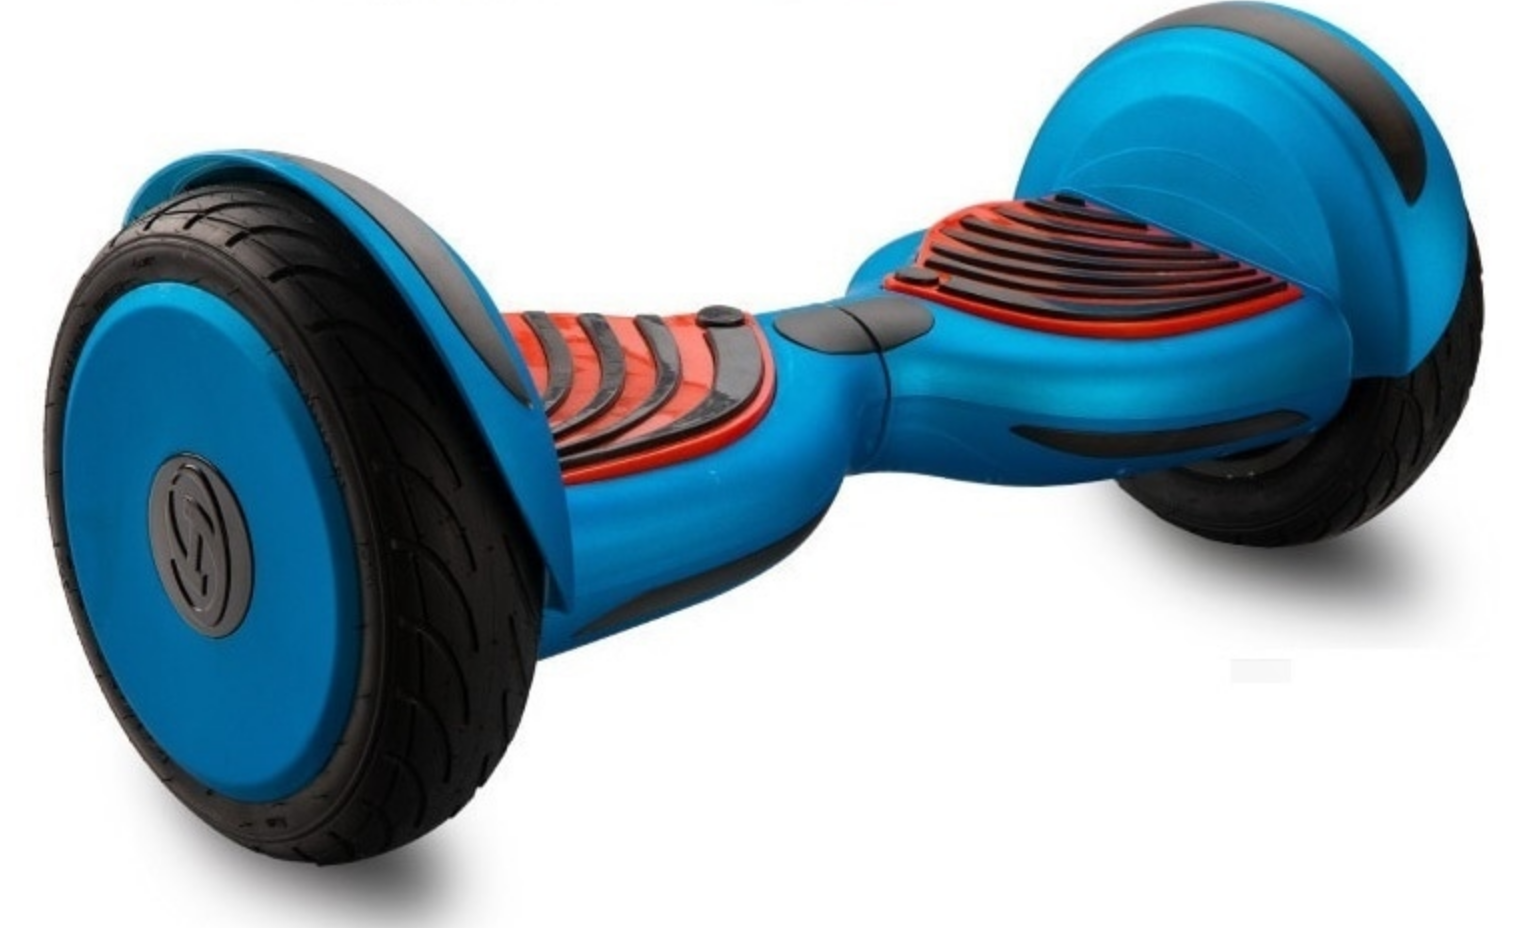 hoverboard pas cher meilleur prix en ligne avis et comparatif 2019. Black Bedroom Furniture Sets. Home Design Ideas